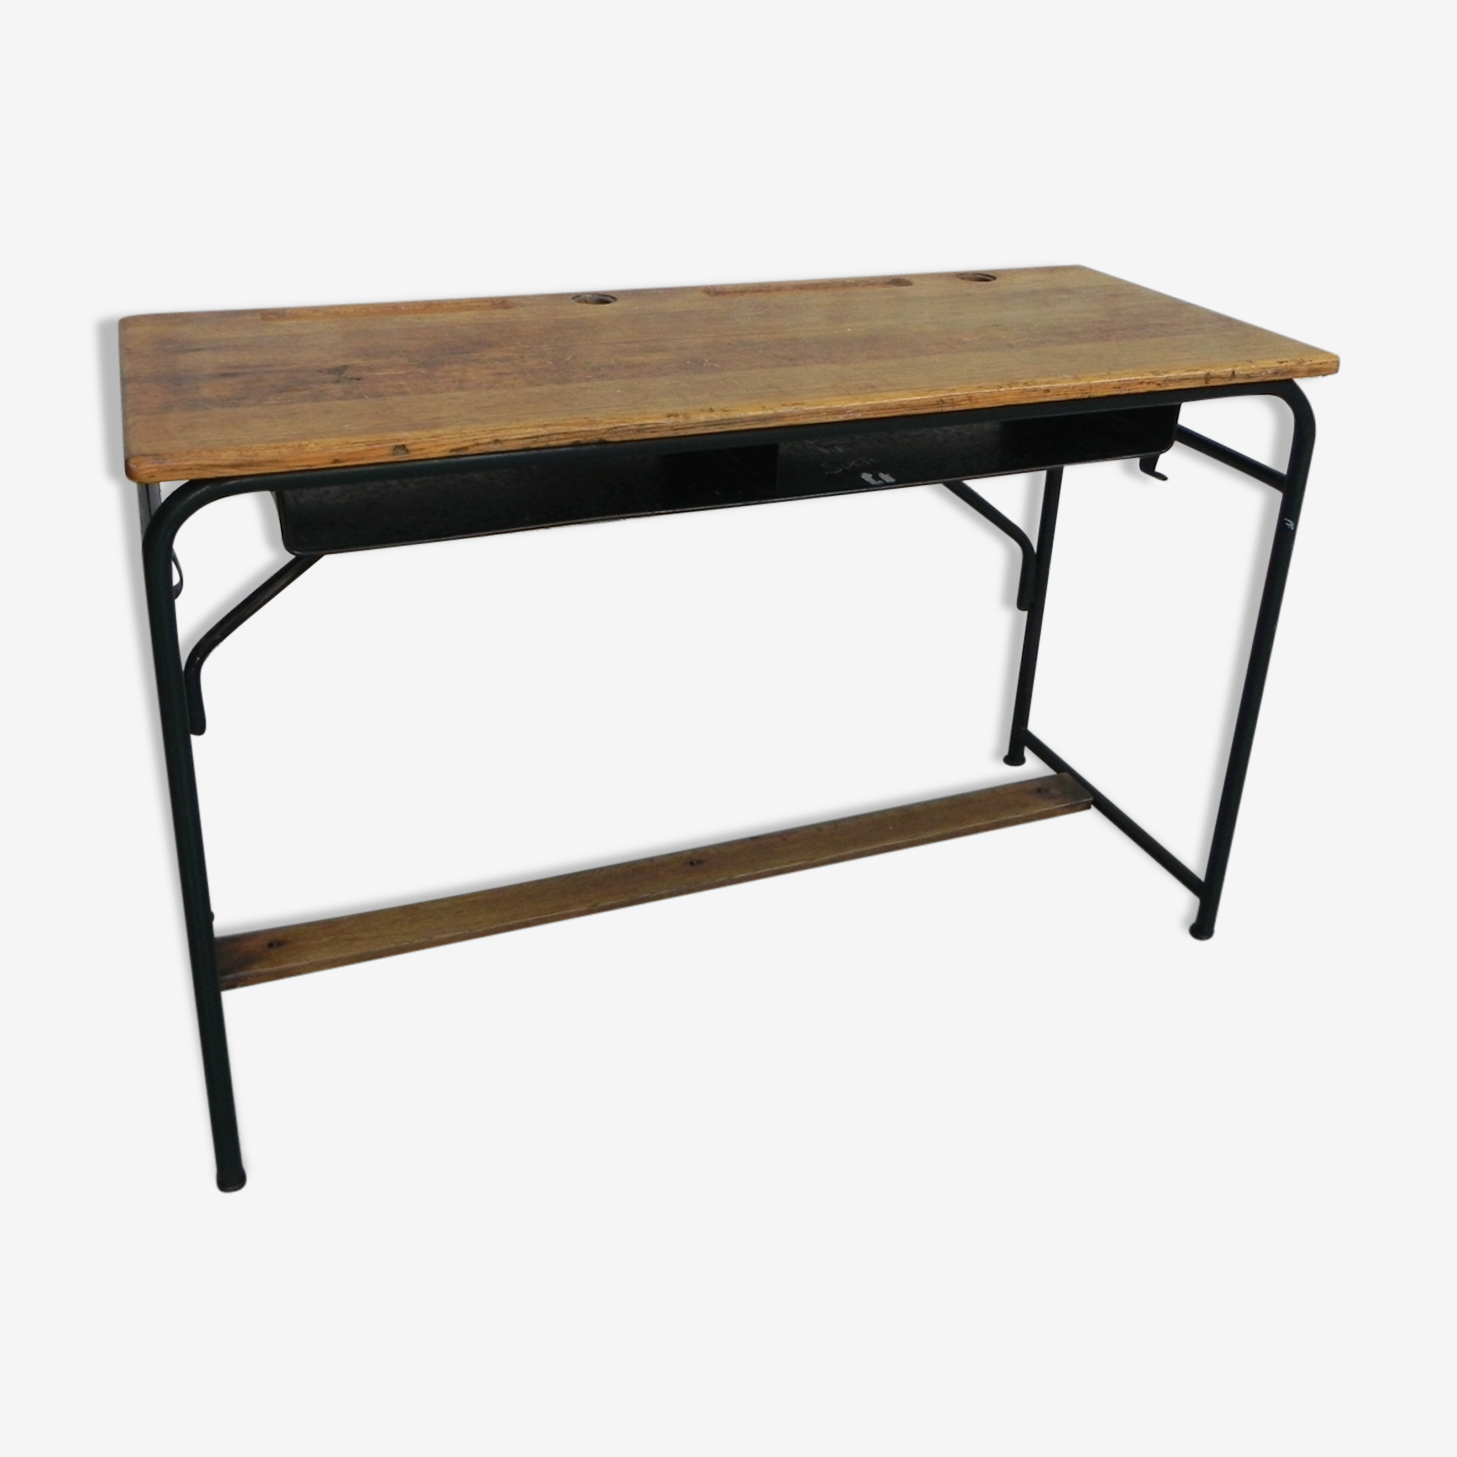 Desk with steel frame and oak top